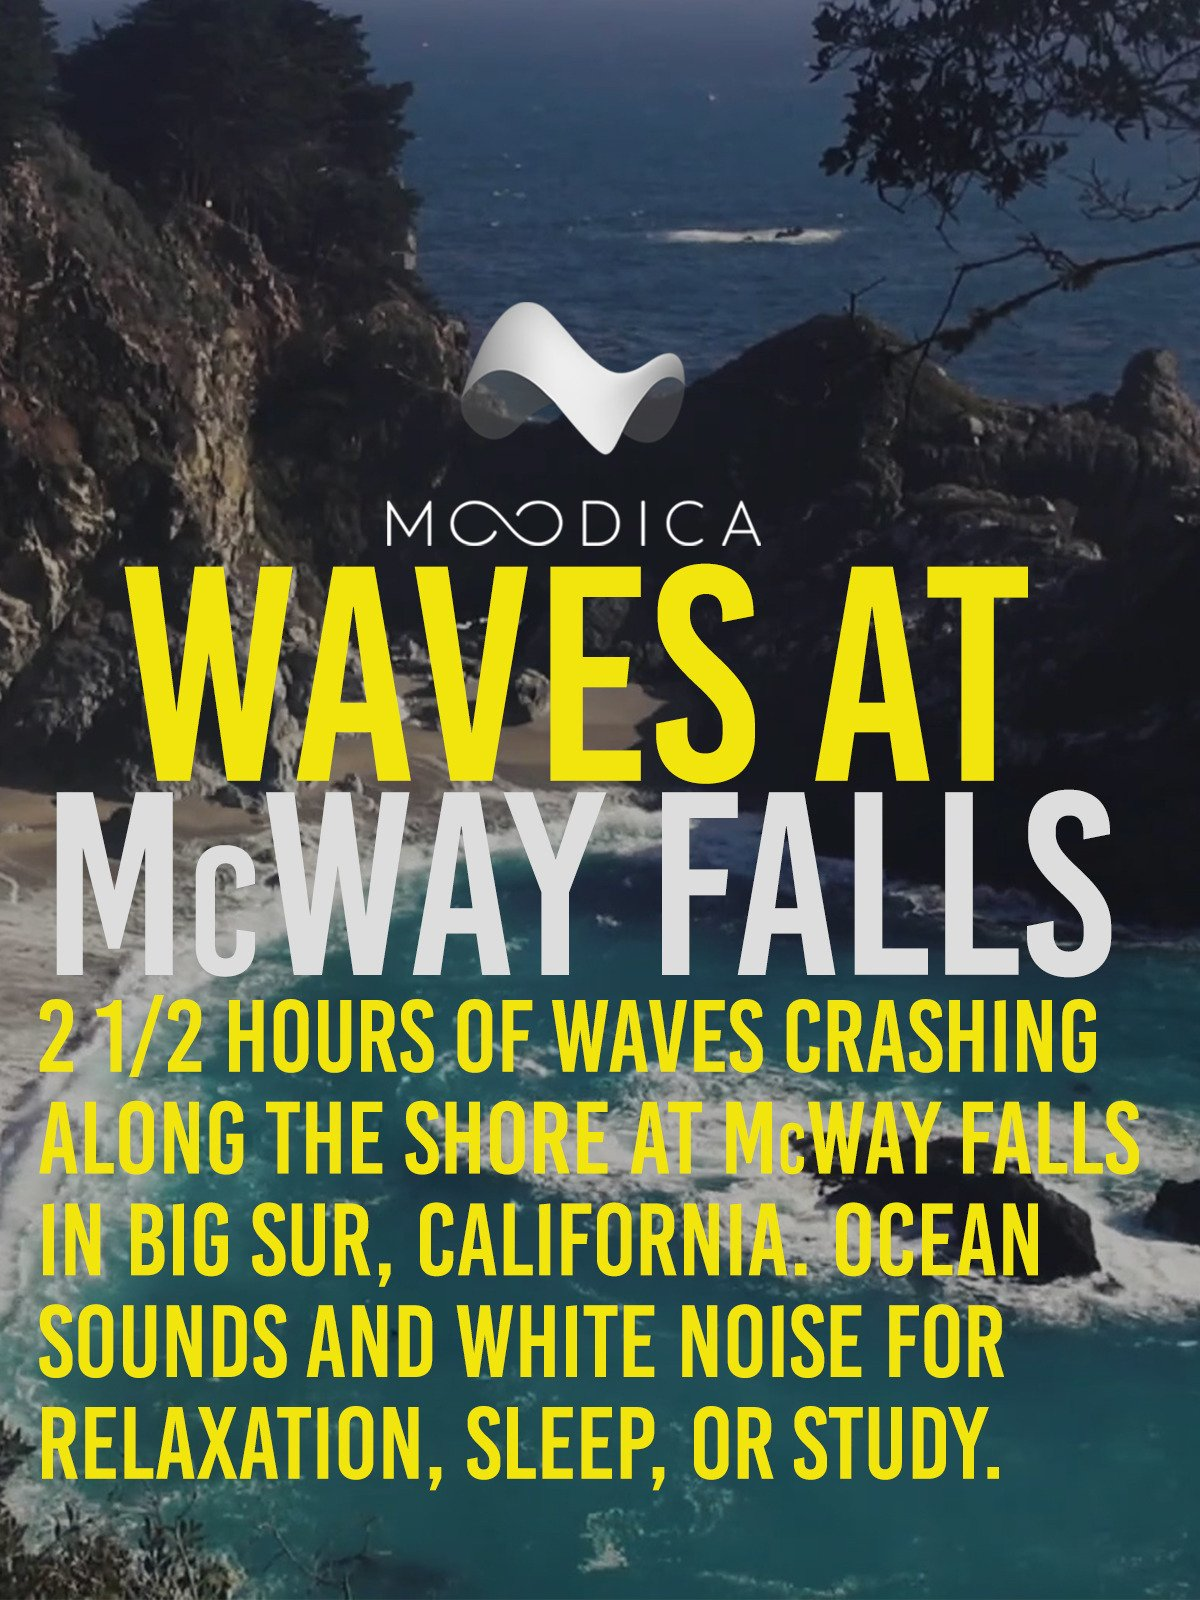 Waves at McWay Falls: 2 1/2 Hours of Waves Crashing Along The Shore: Ocean Sounds and White Noise for Relaxation, Sleep, or Study